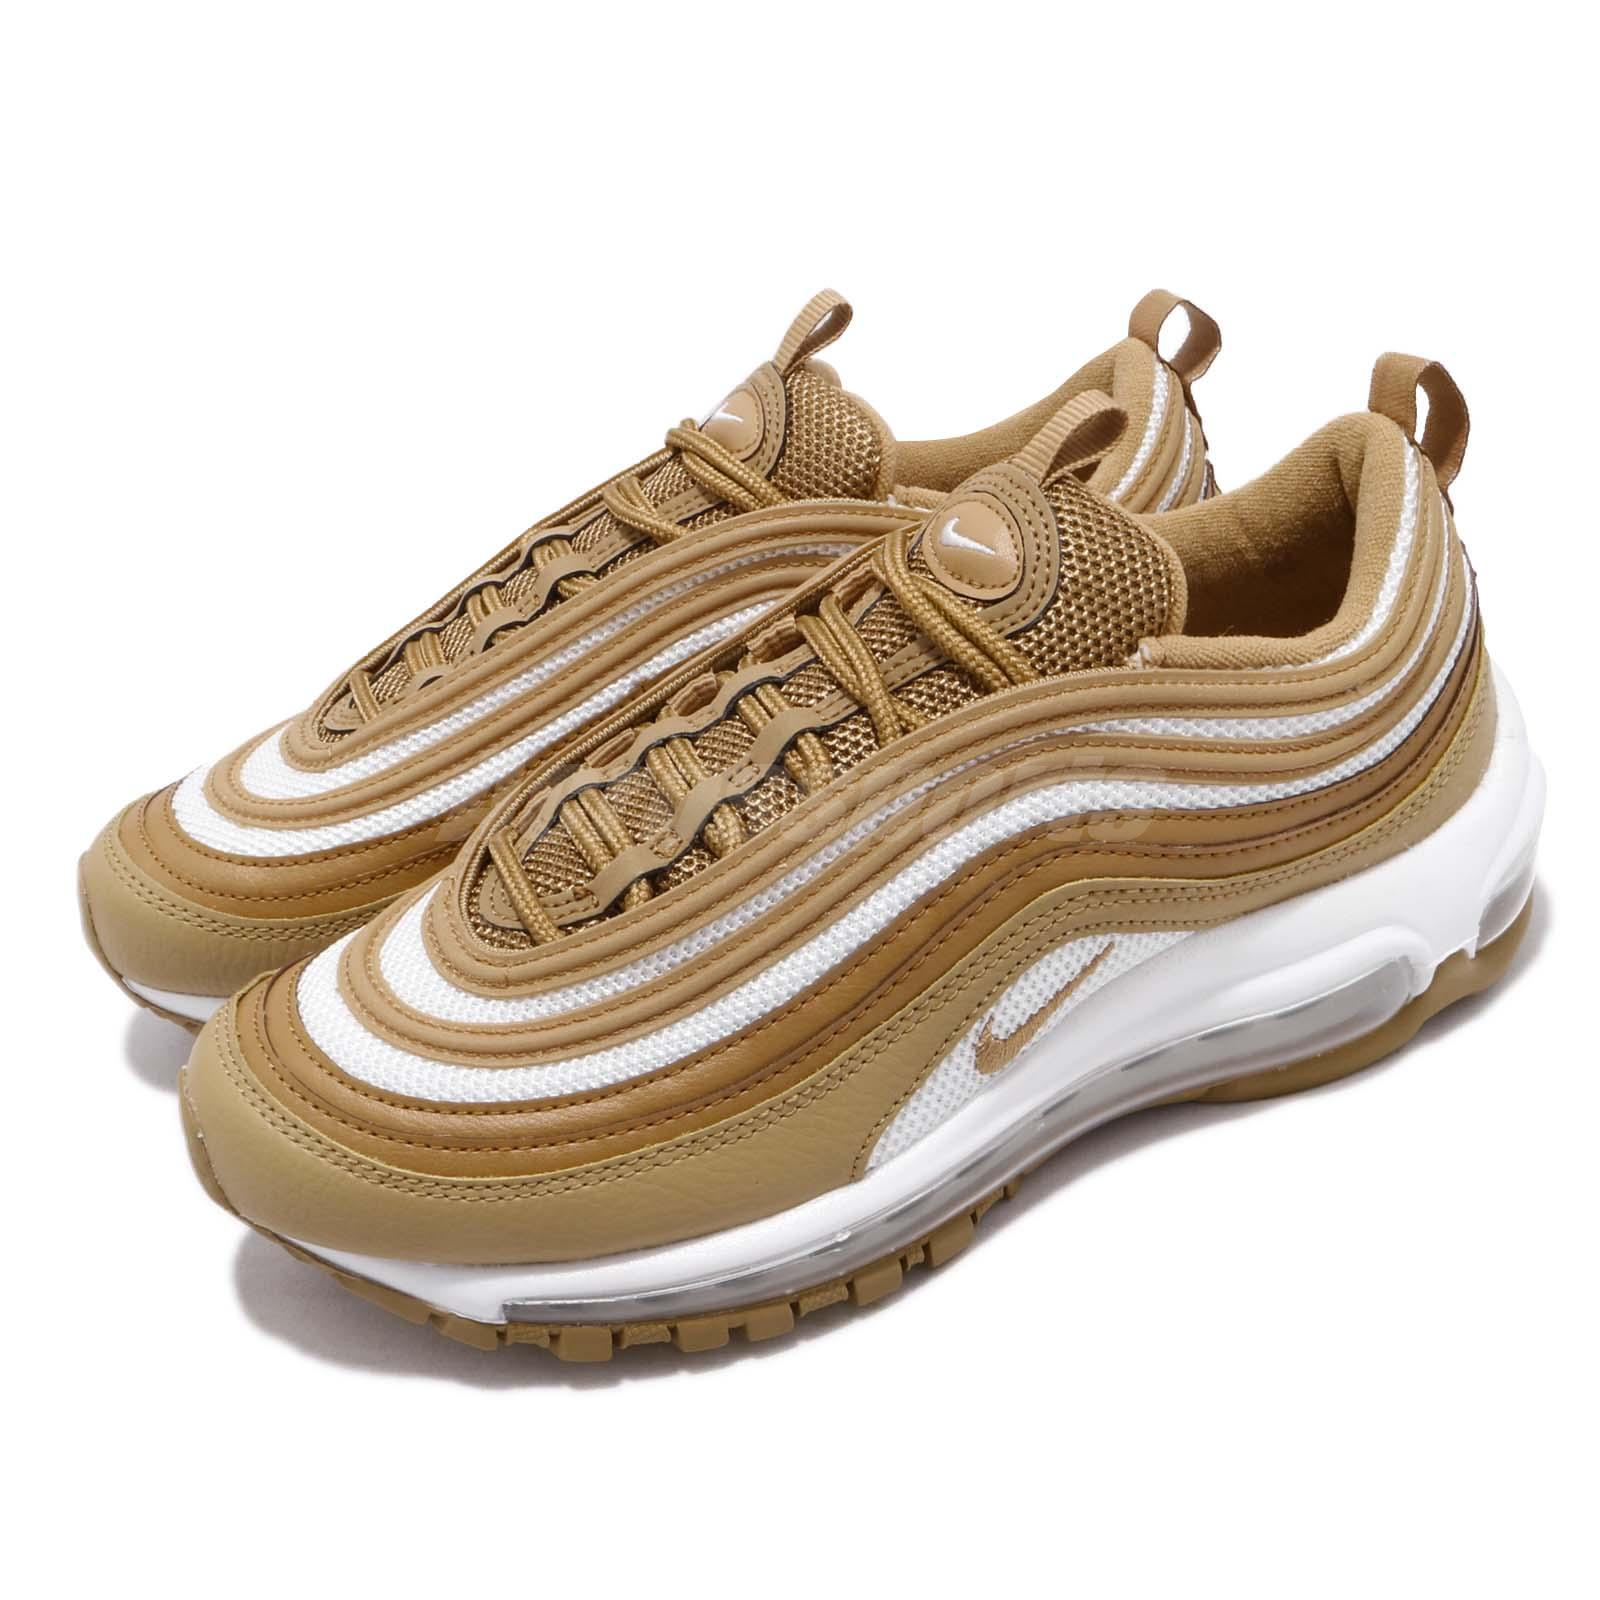 Details about Nike Wmns Air Max 97 Wheat Club Gold Women Running Shoes Sneakers 921733 702